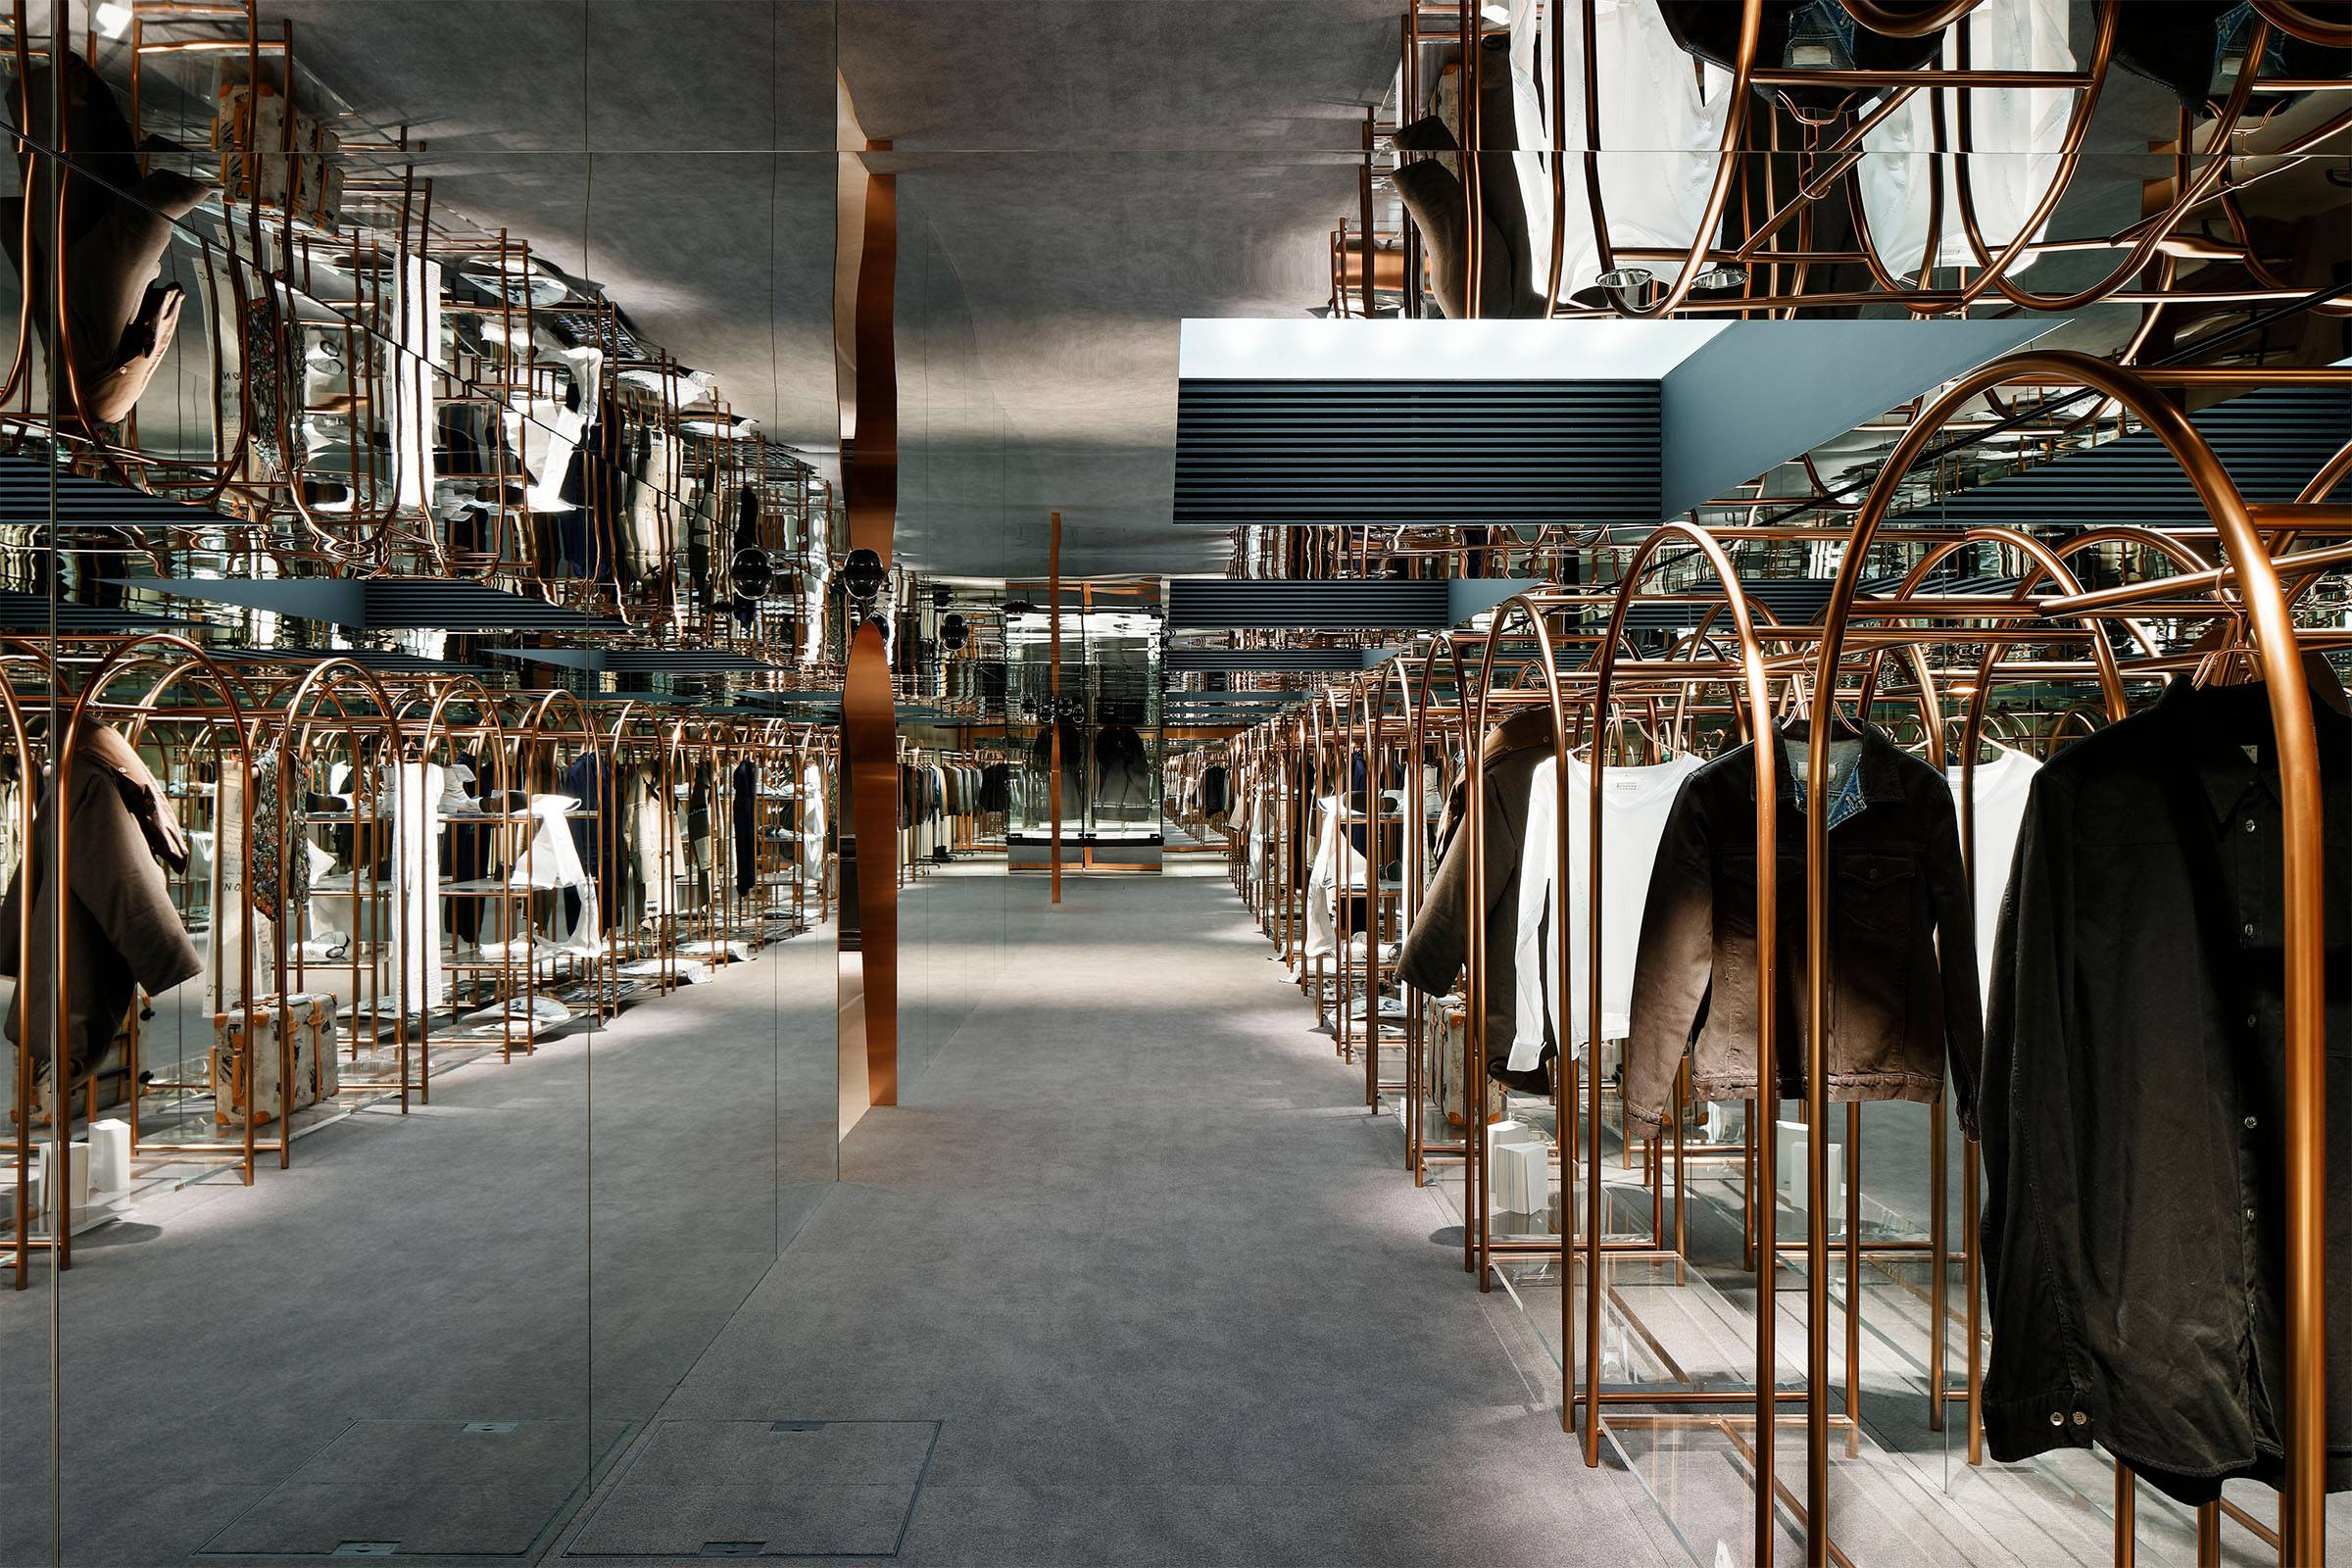 Archives as Art: A Closer Look at Archive Store